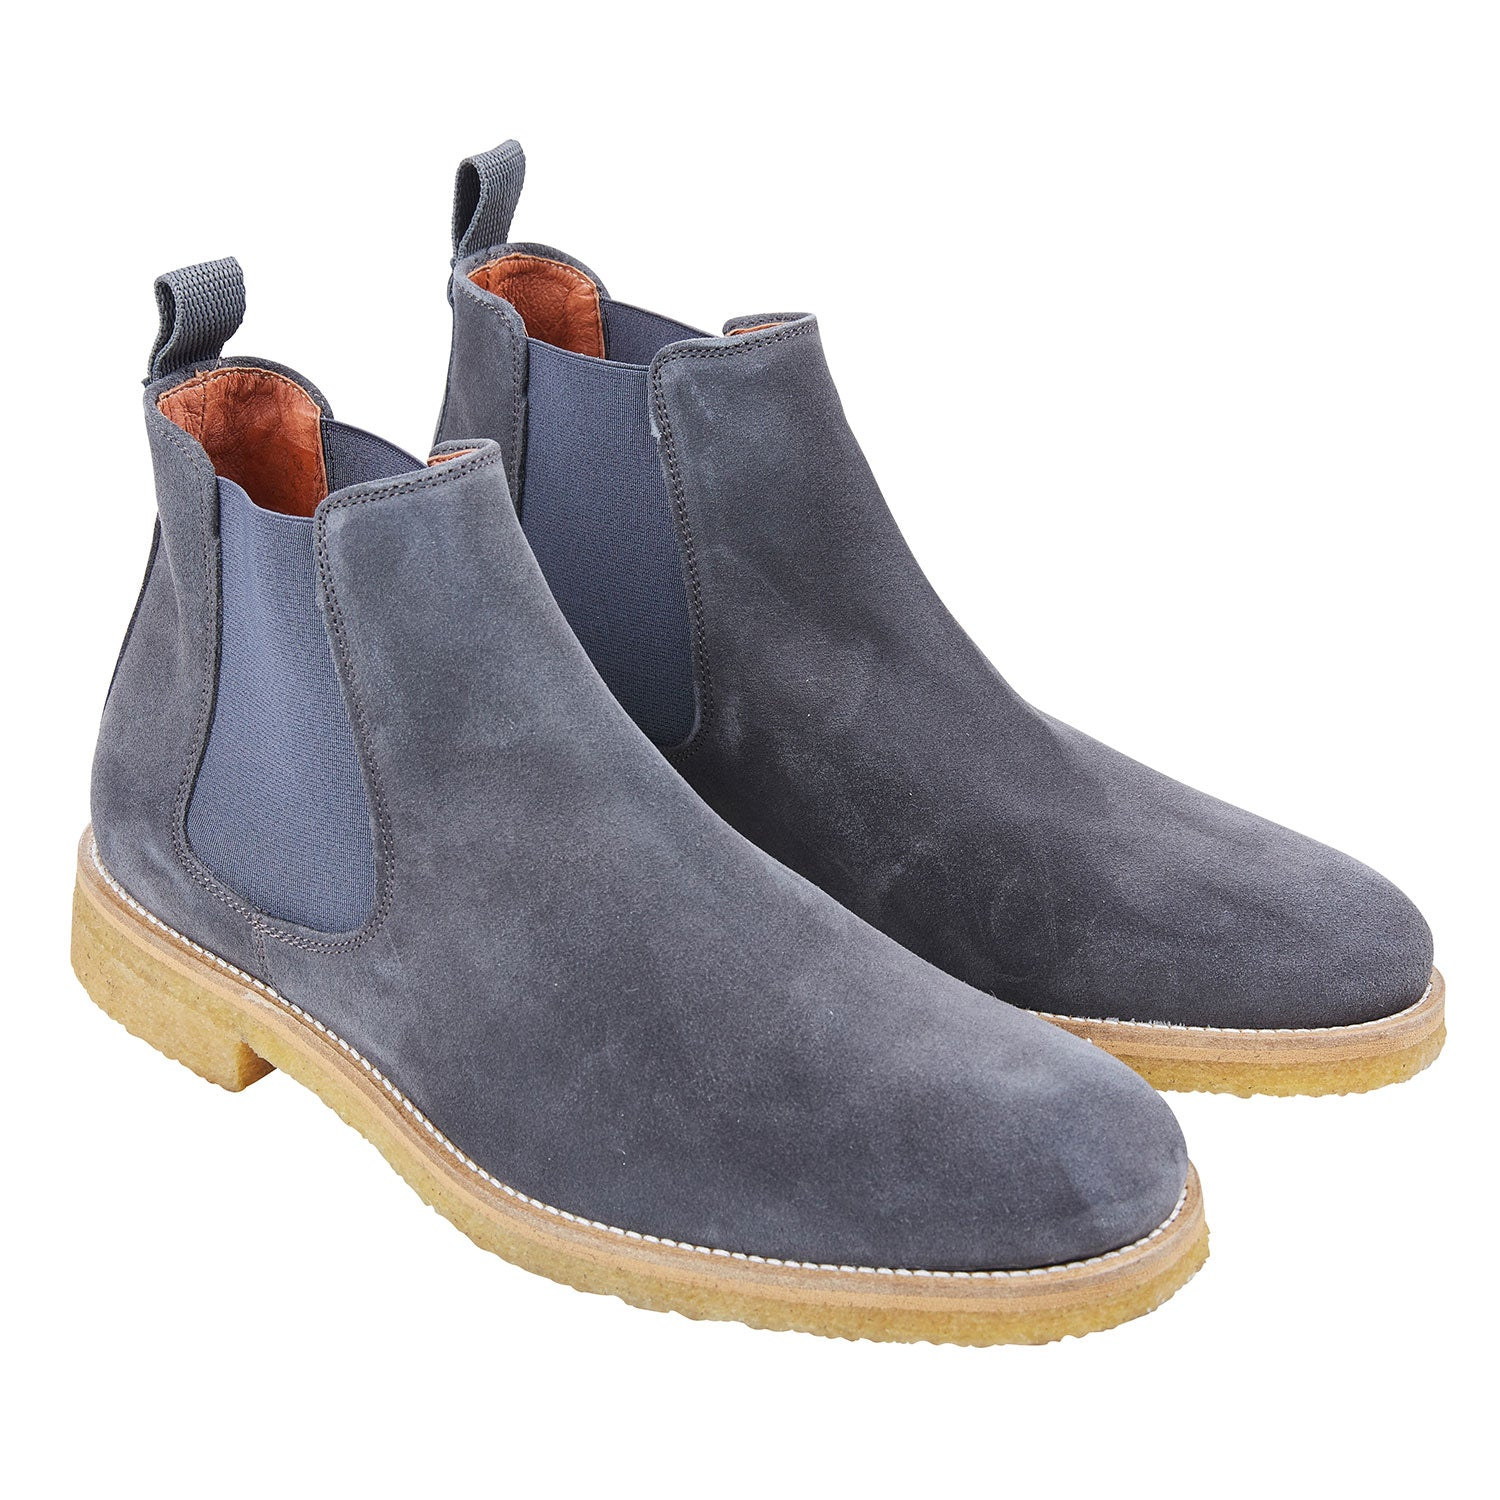 Garment Project Chelsea Boot grau